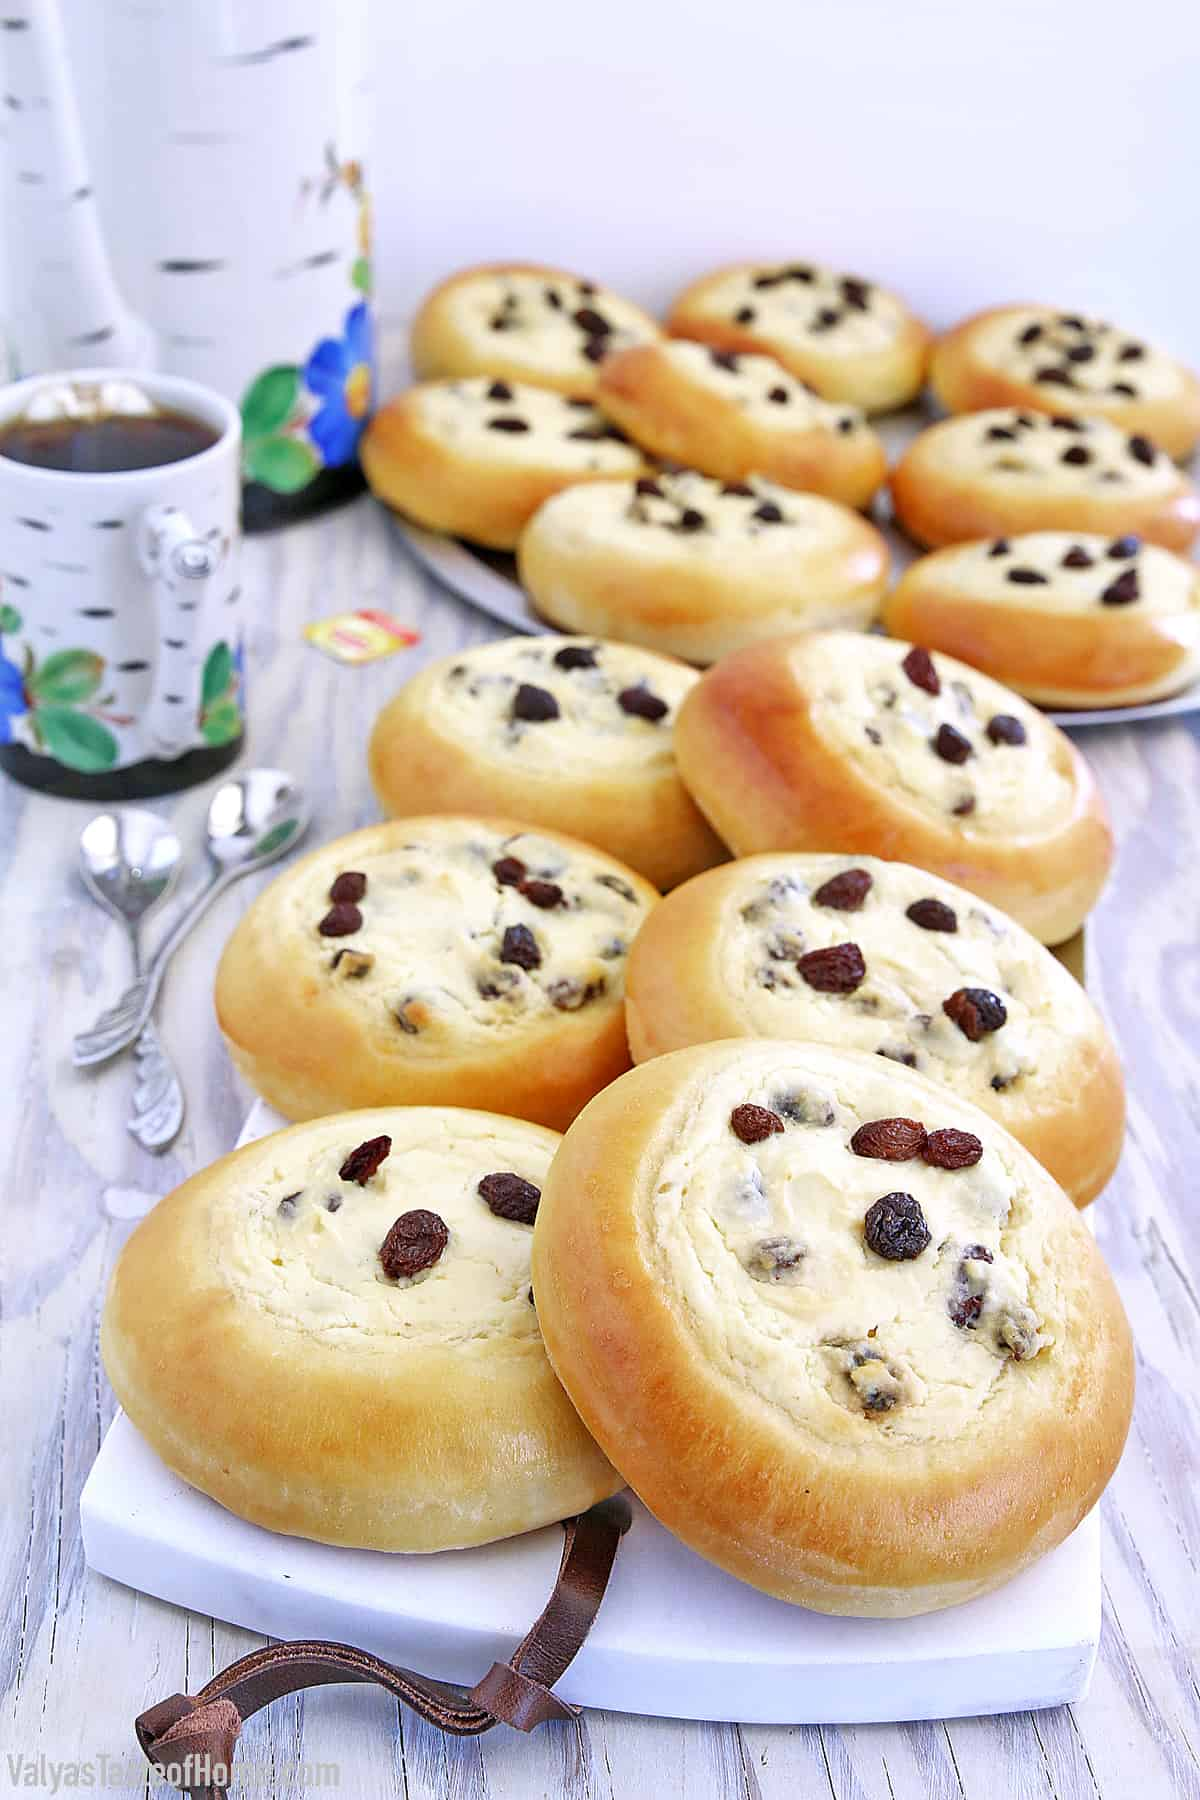 These Sweet Buns with Farmers Cheese and Raisins are made with a slightly sweet yeast dough that is topped with sweet farmer's cheese filling and is very popular in Eastern Europe.